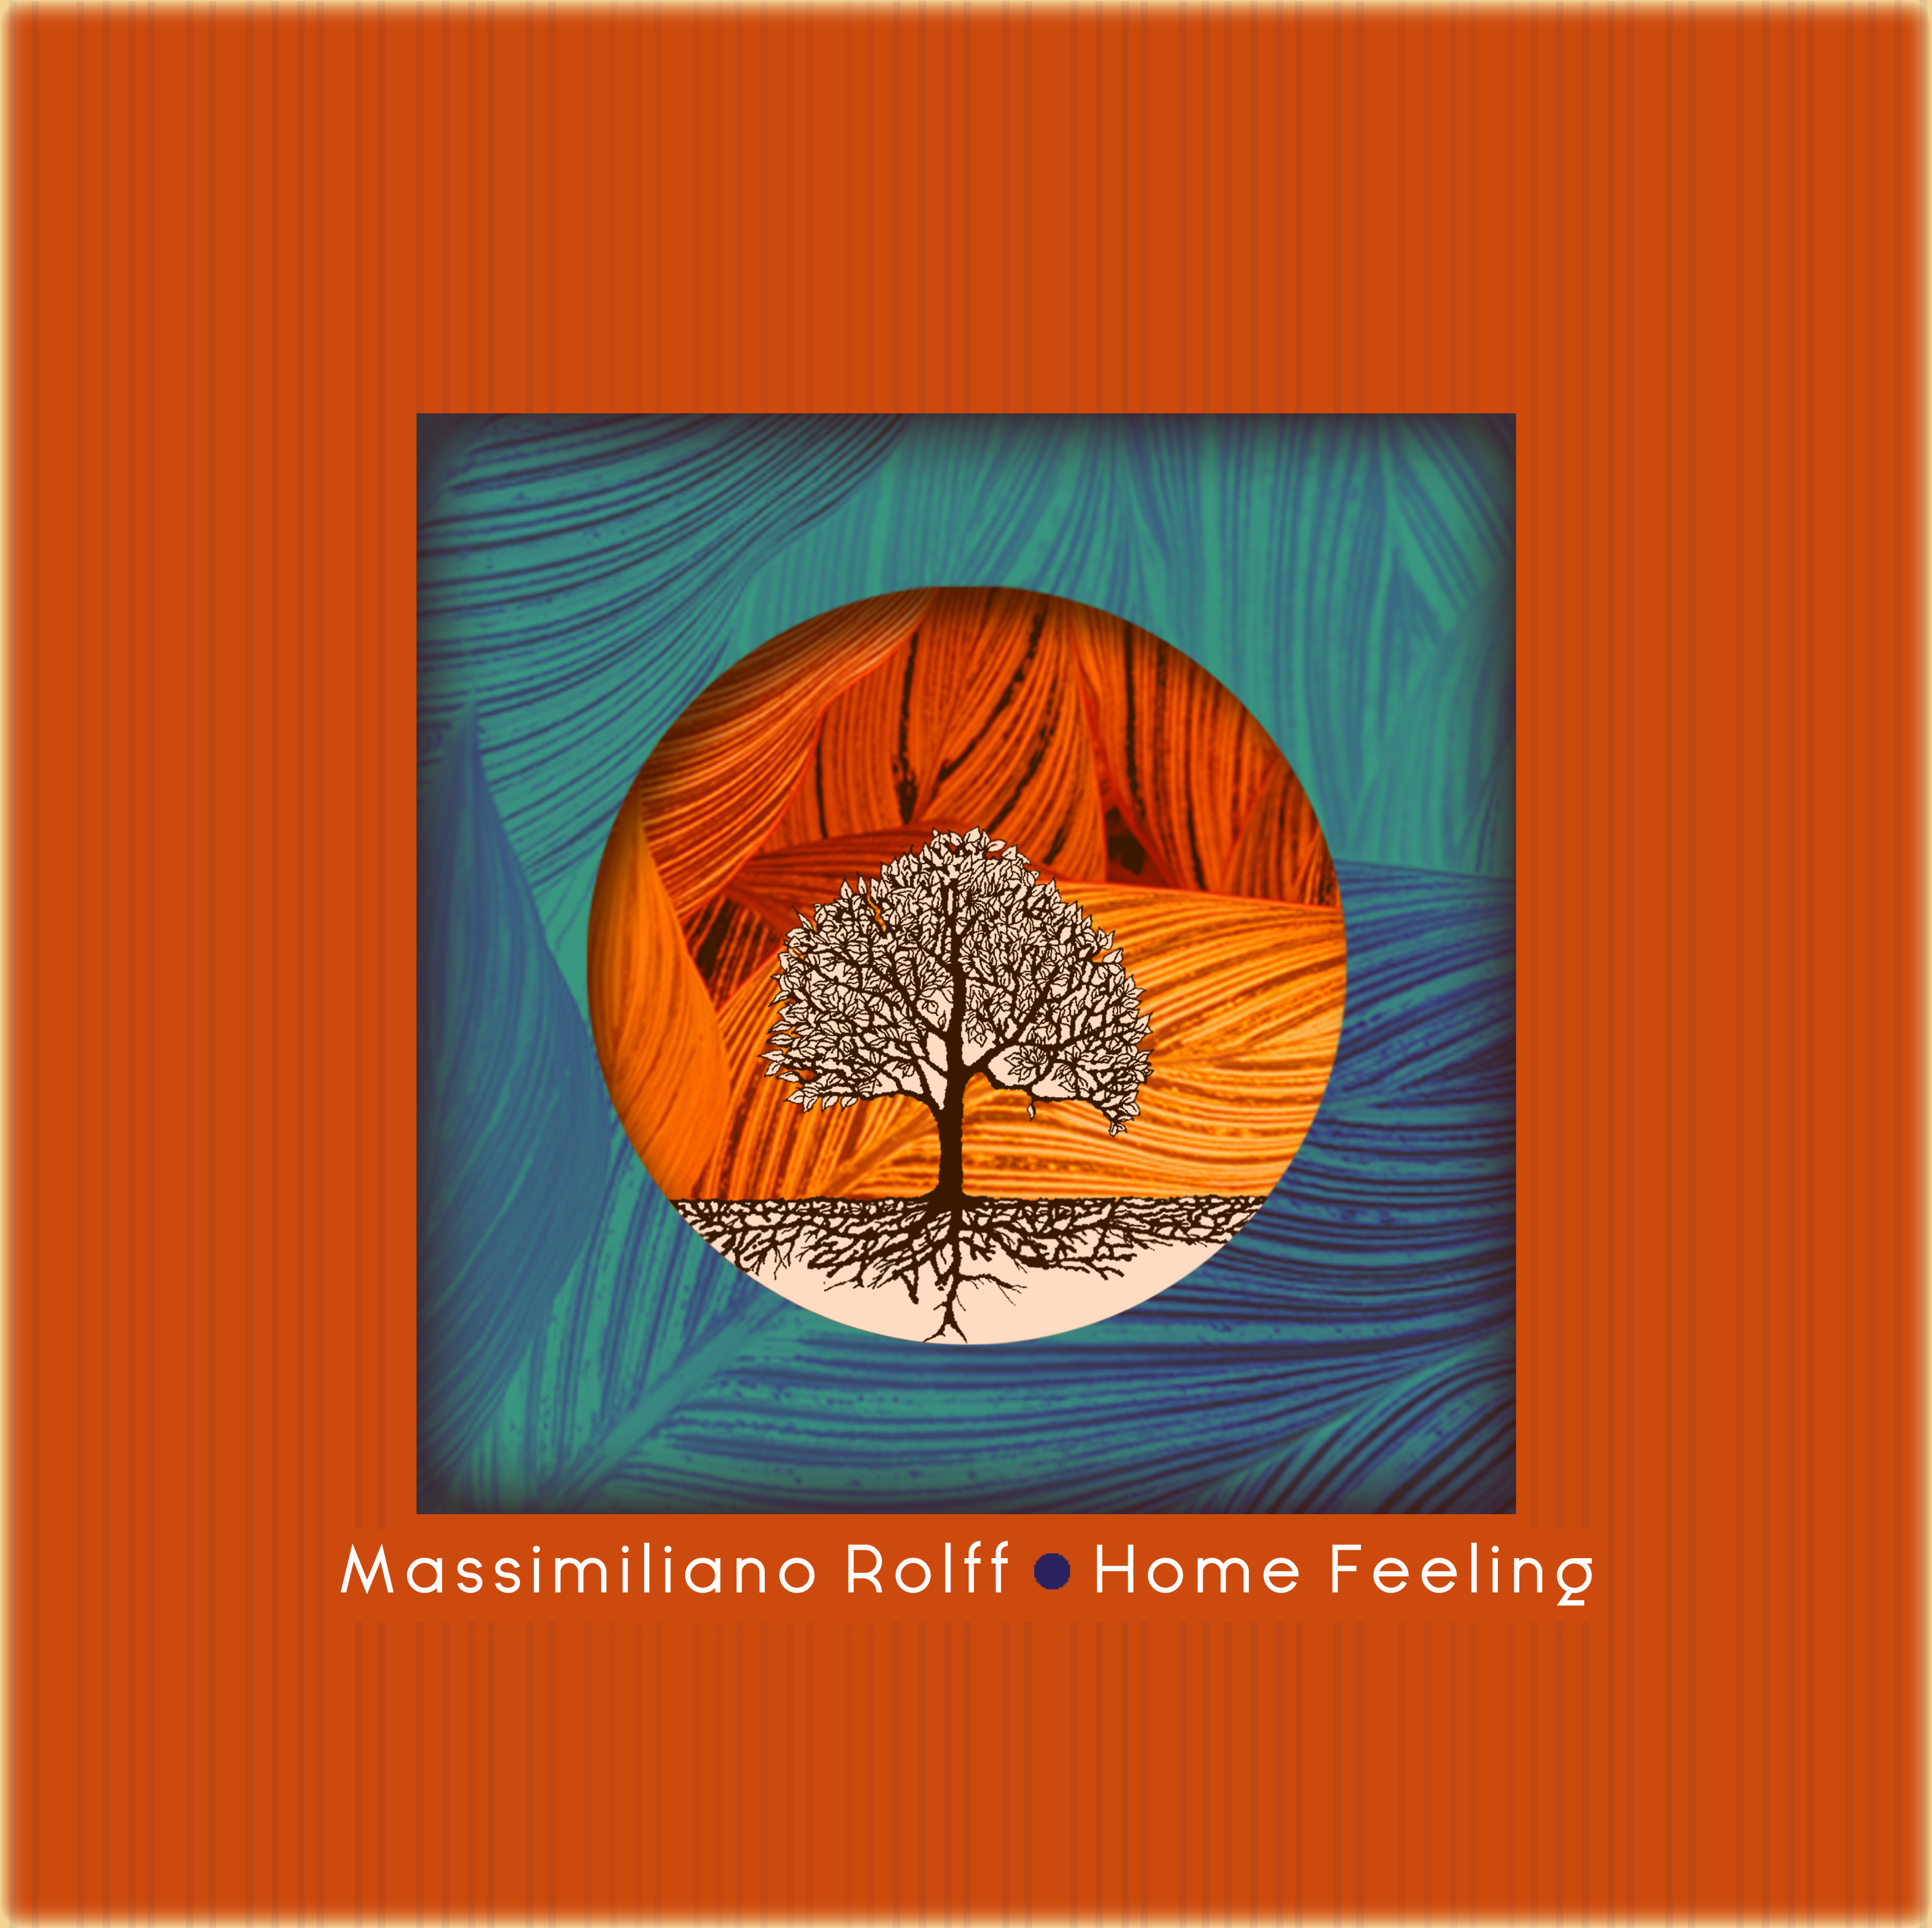 MASSIMILIANO ROLFF - Home Feeling cover